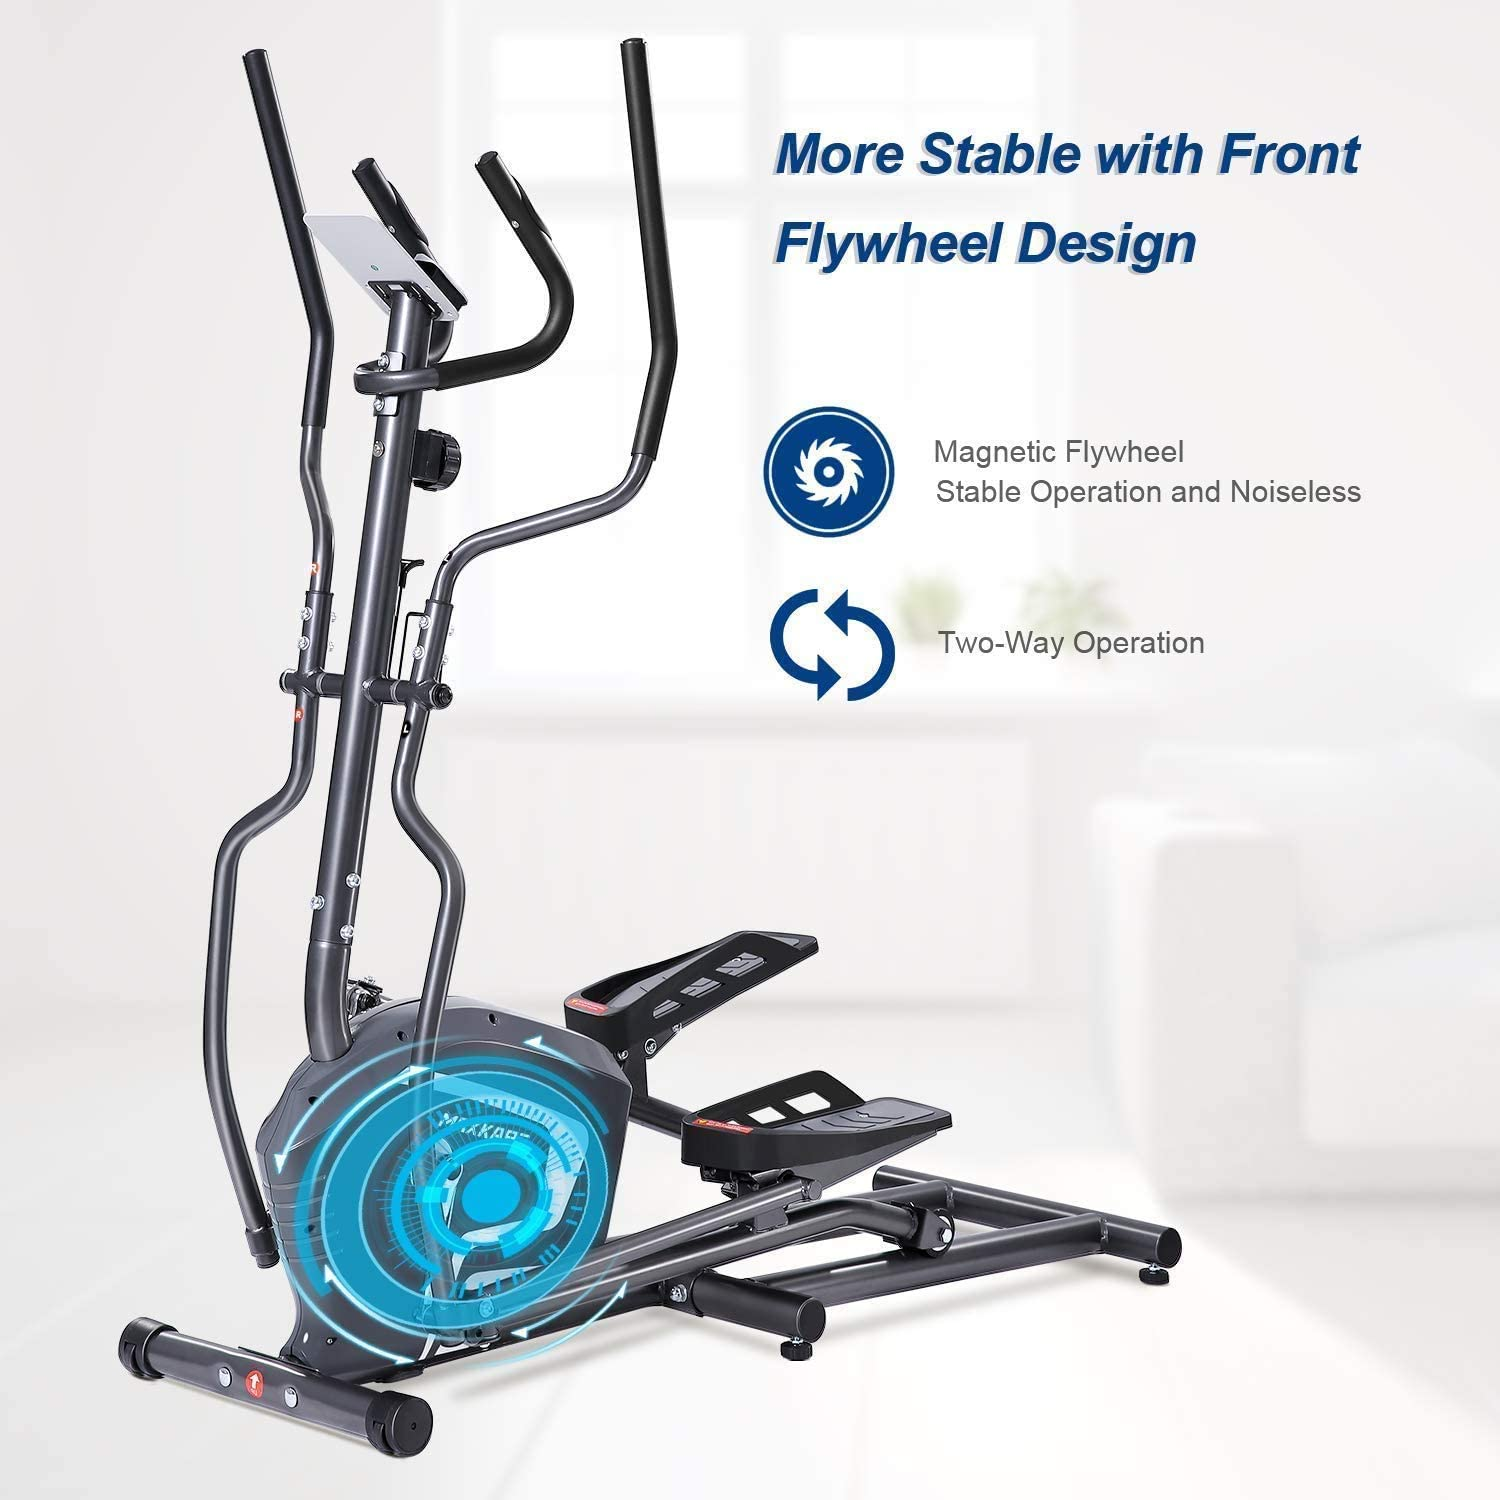 Gym Exercise Step Machine Air Walker for Exercise in the Office /& at Home Workplace Health Resistance adjustment Leg Elliptical Cross Trainer